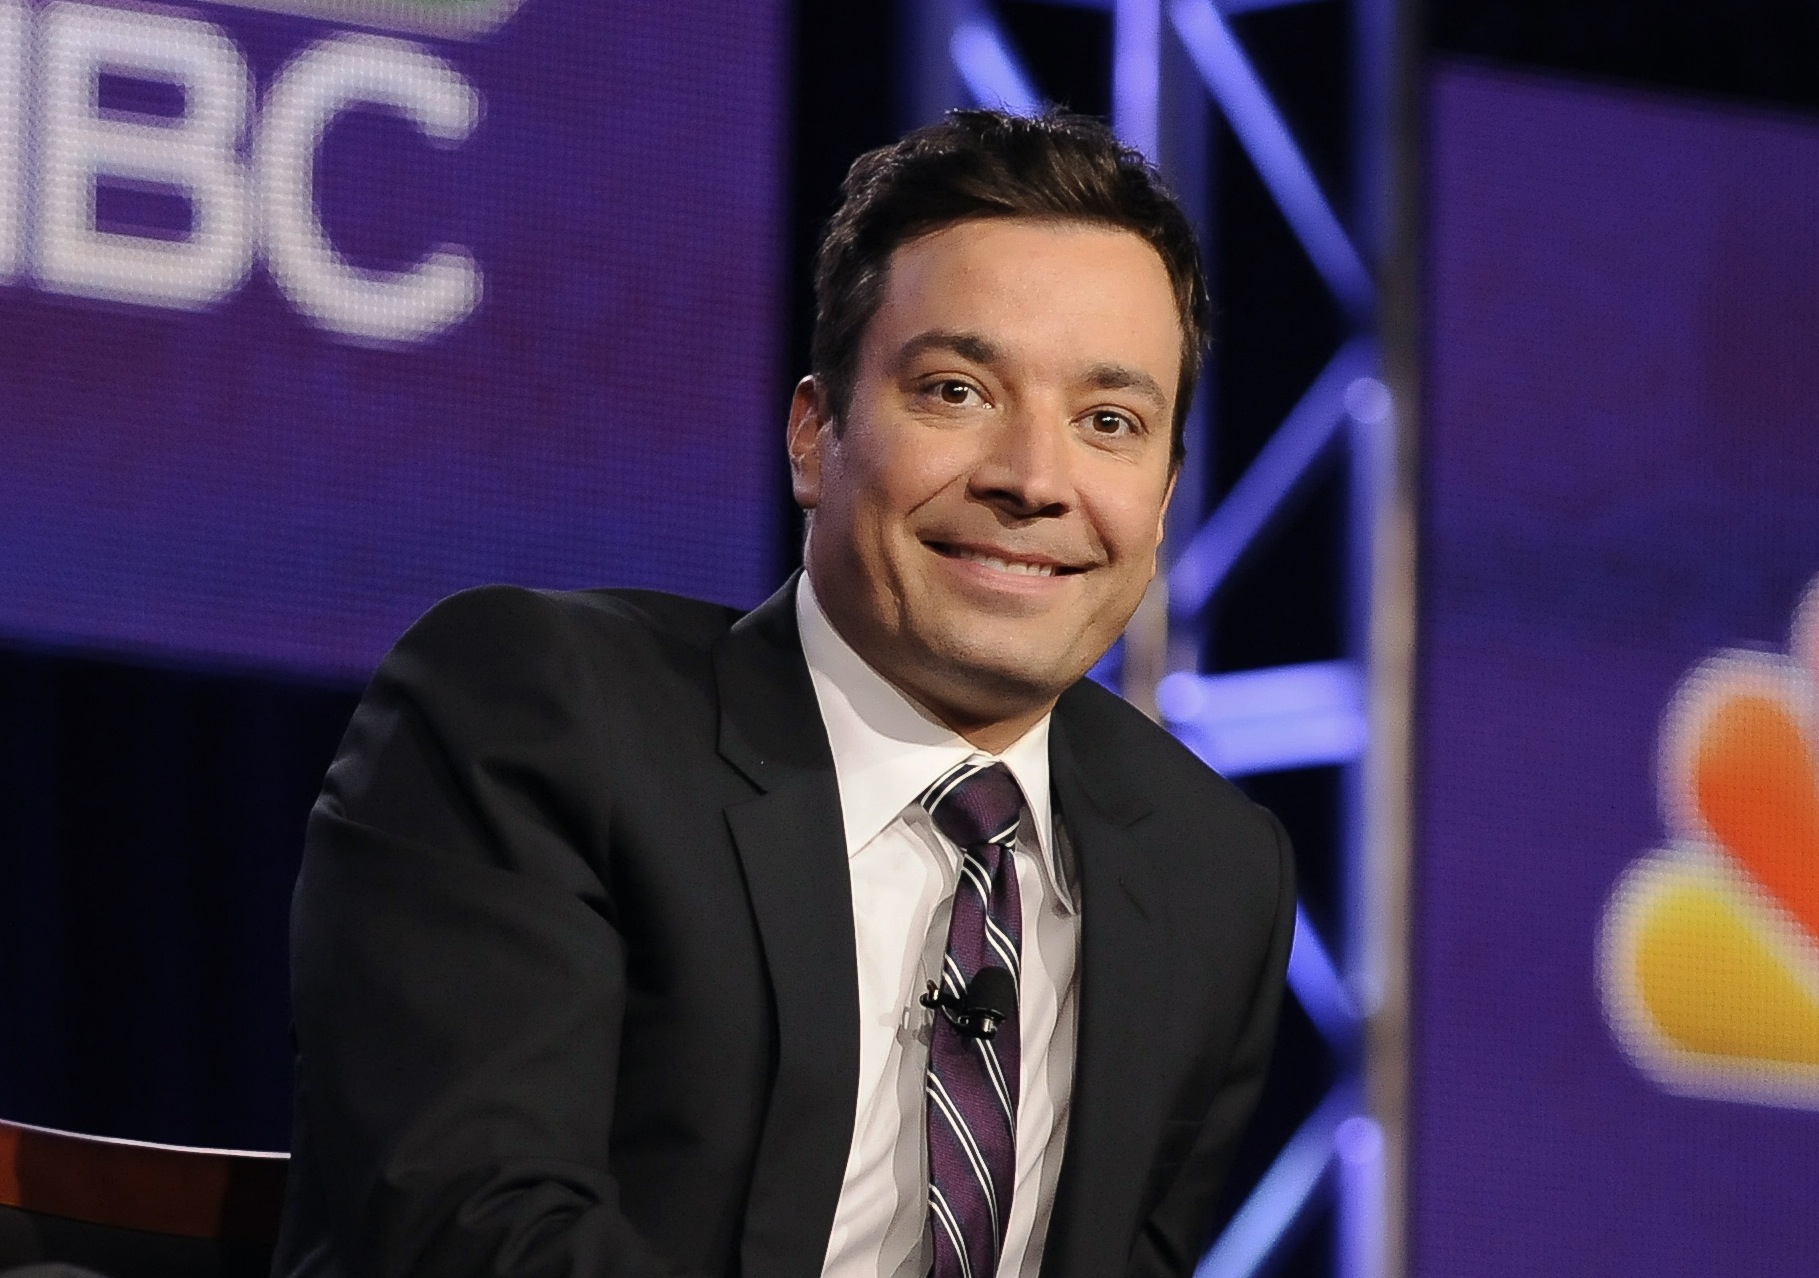 Jimmy Fallon takes part in a panel discussion at the NBC portion of the 2014 Winter Press Tour for the Television Critics Association in Pasadena